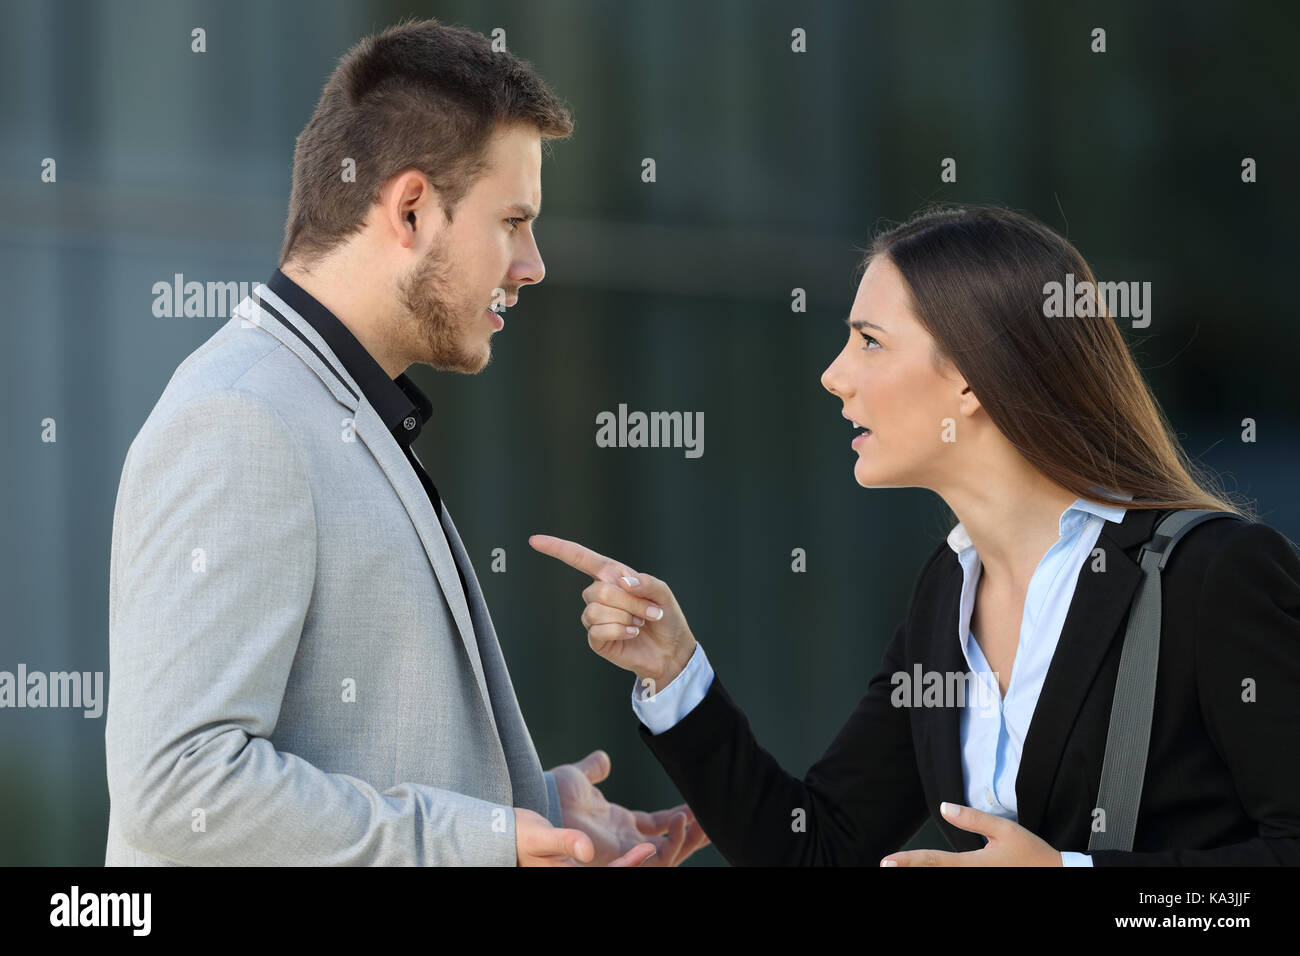 Side view of an angry couple of executives arguing standing on the street - Stock Image